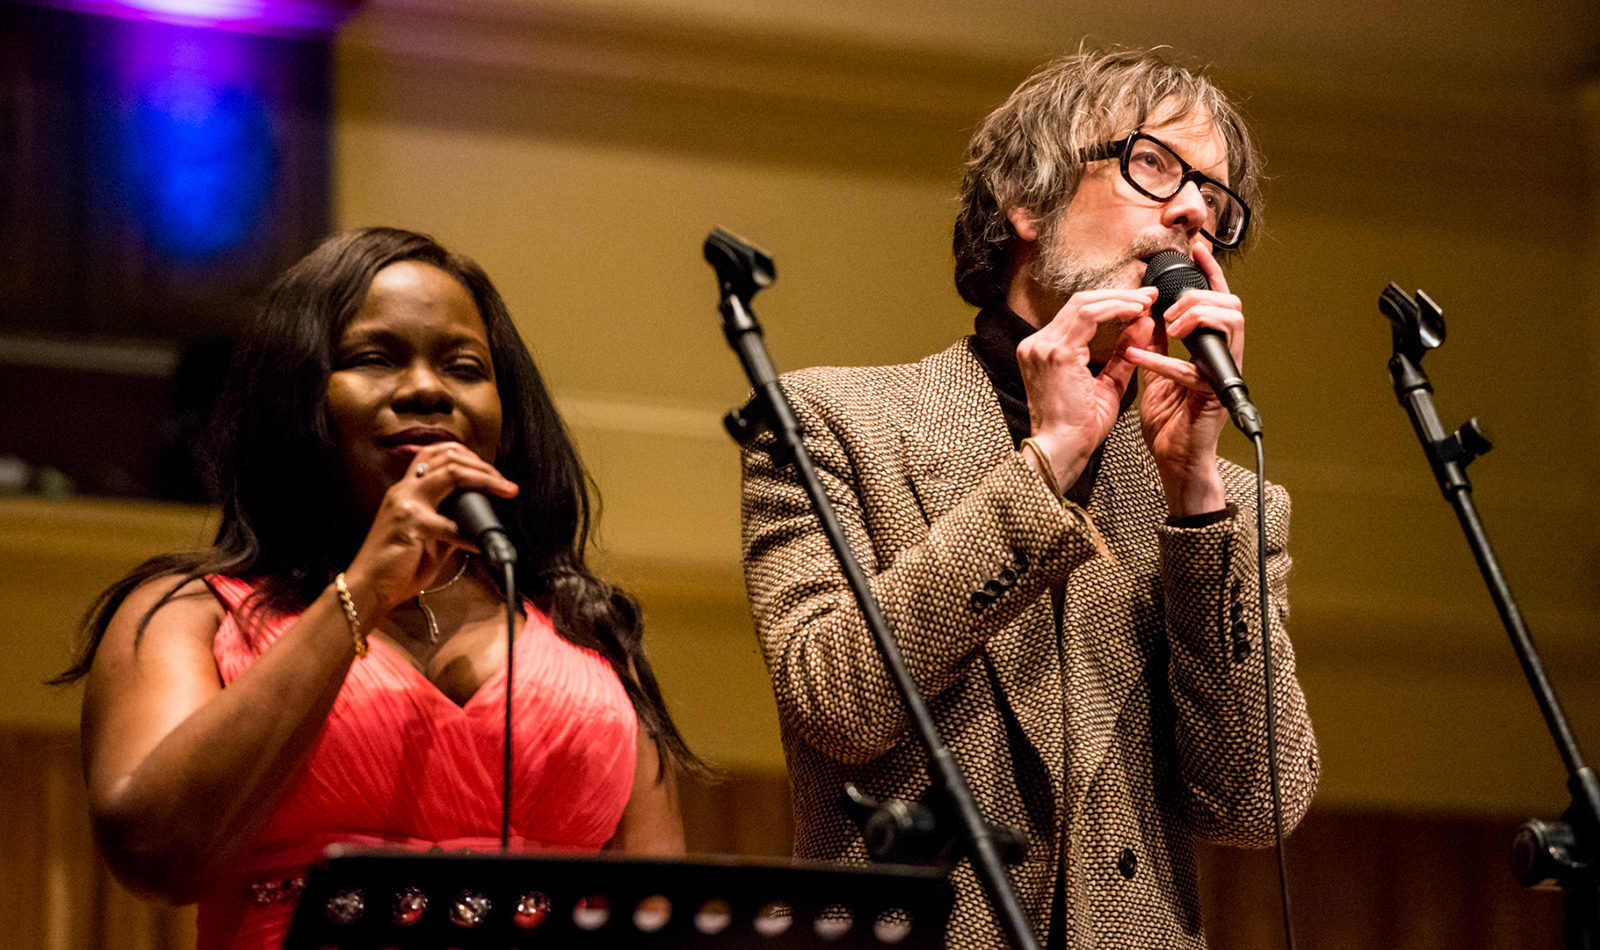 Jarvis Cocker and Victoria Oruwari sing together on stage, holding microphones